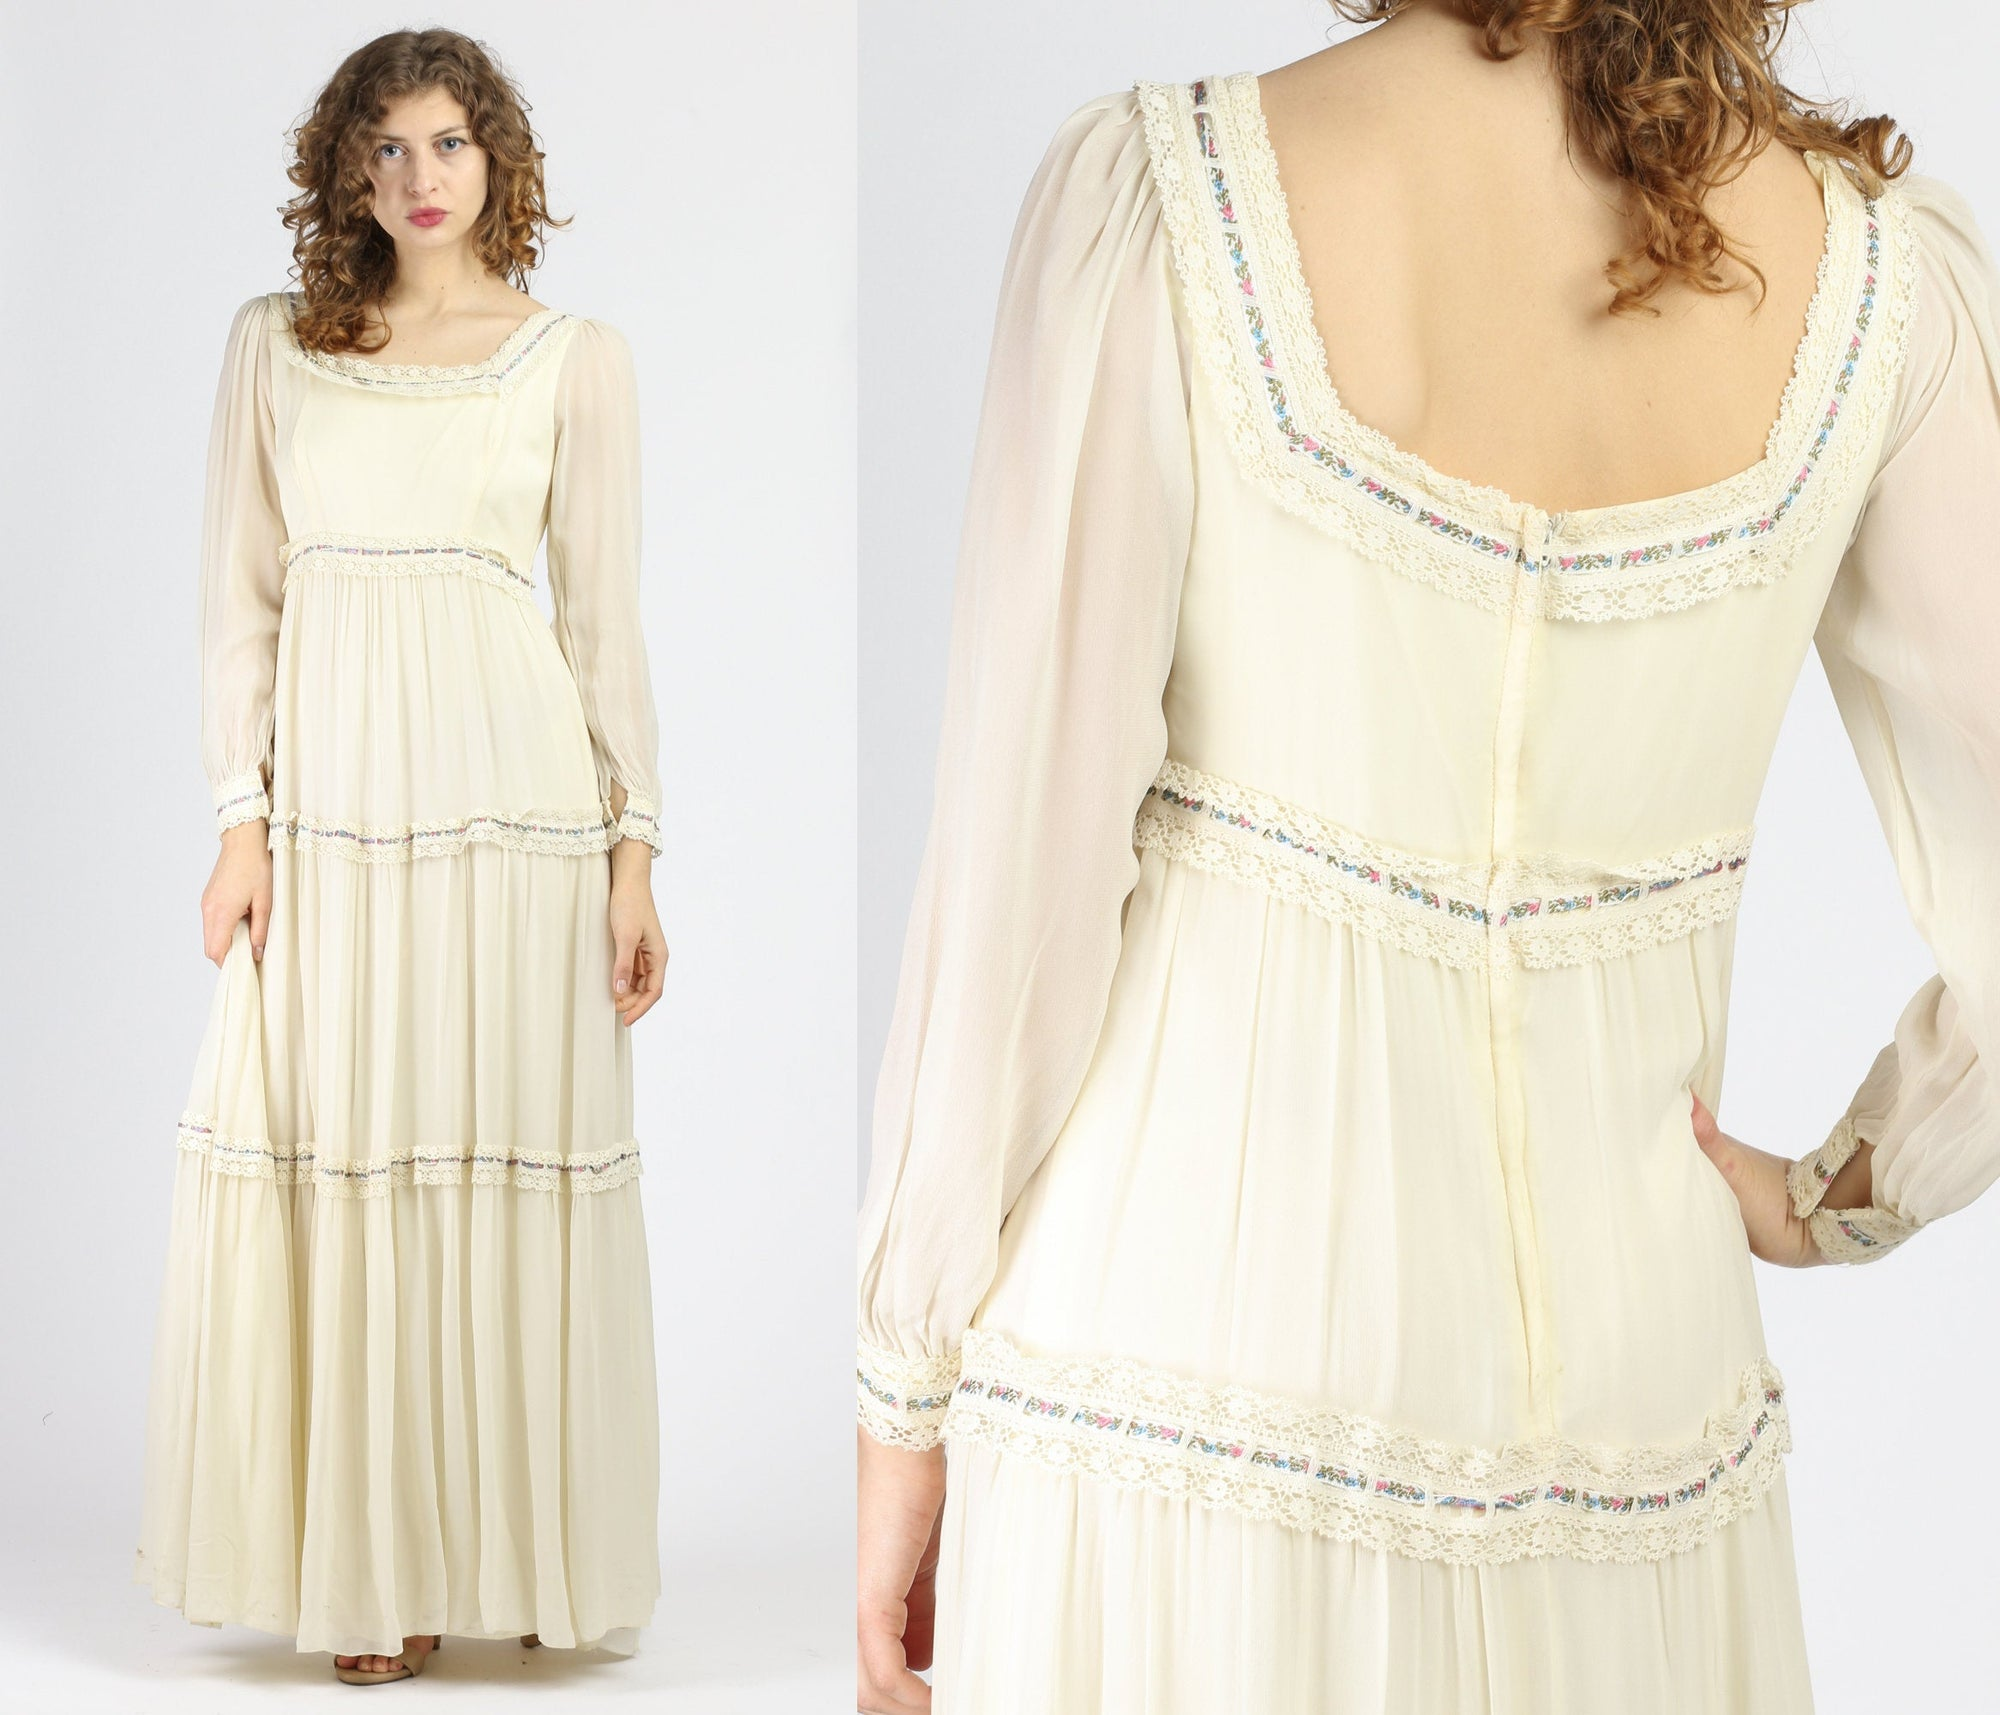 60s 70s Boho Lace & Floral Trim Prairie Gown - Medium